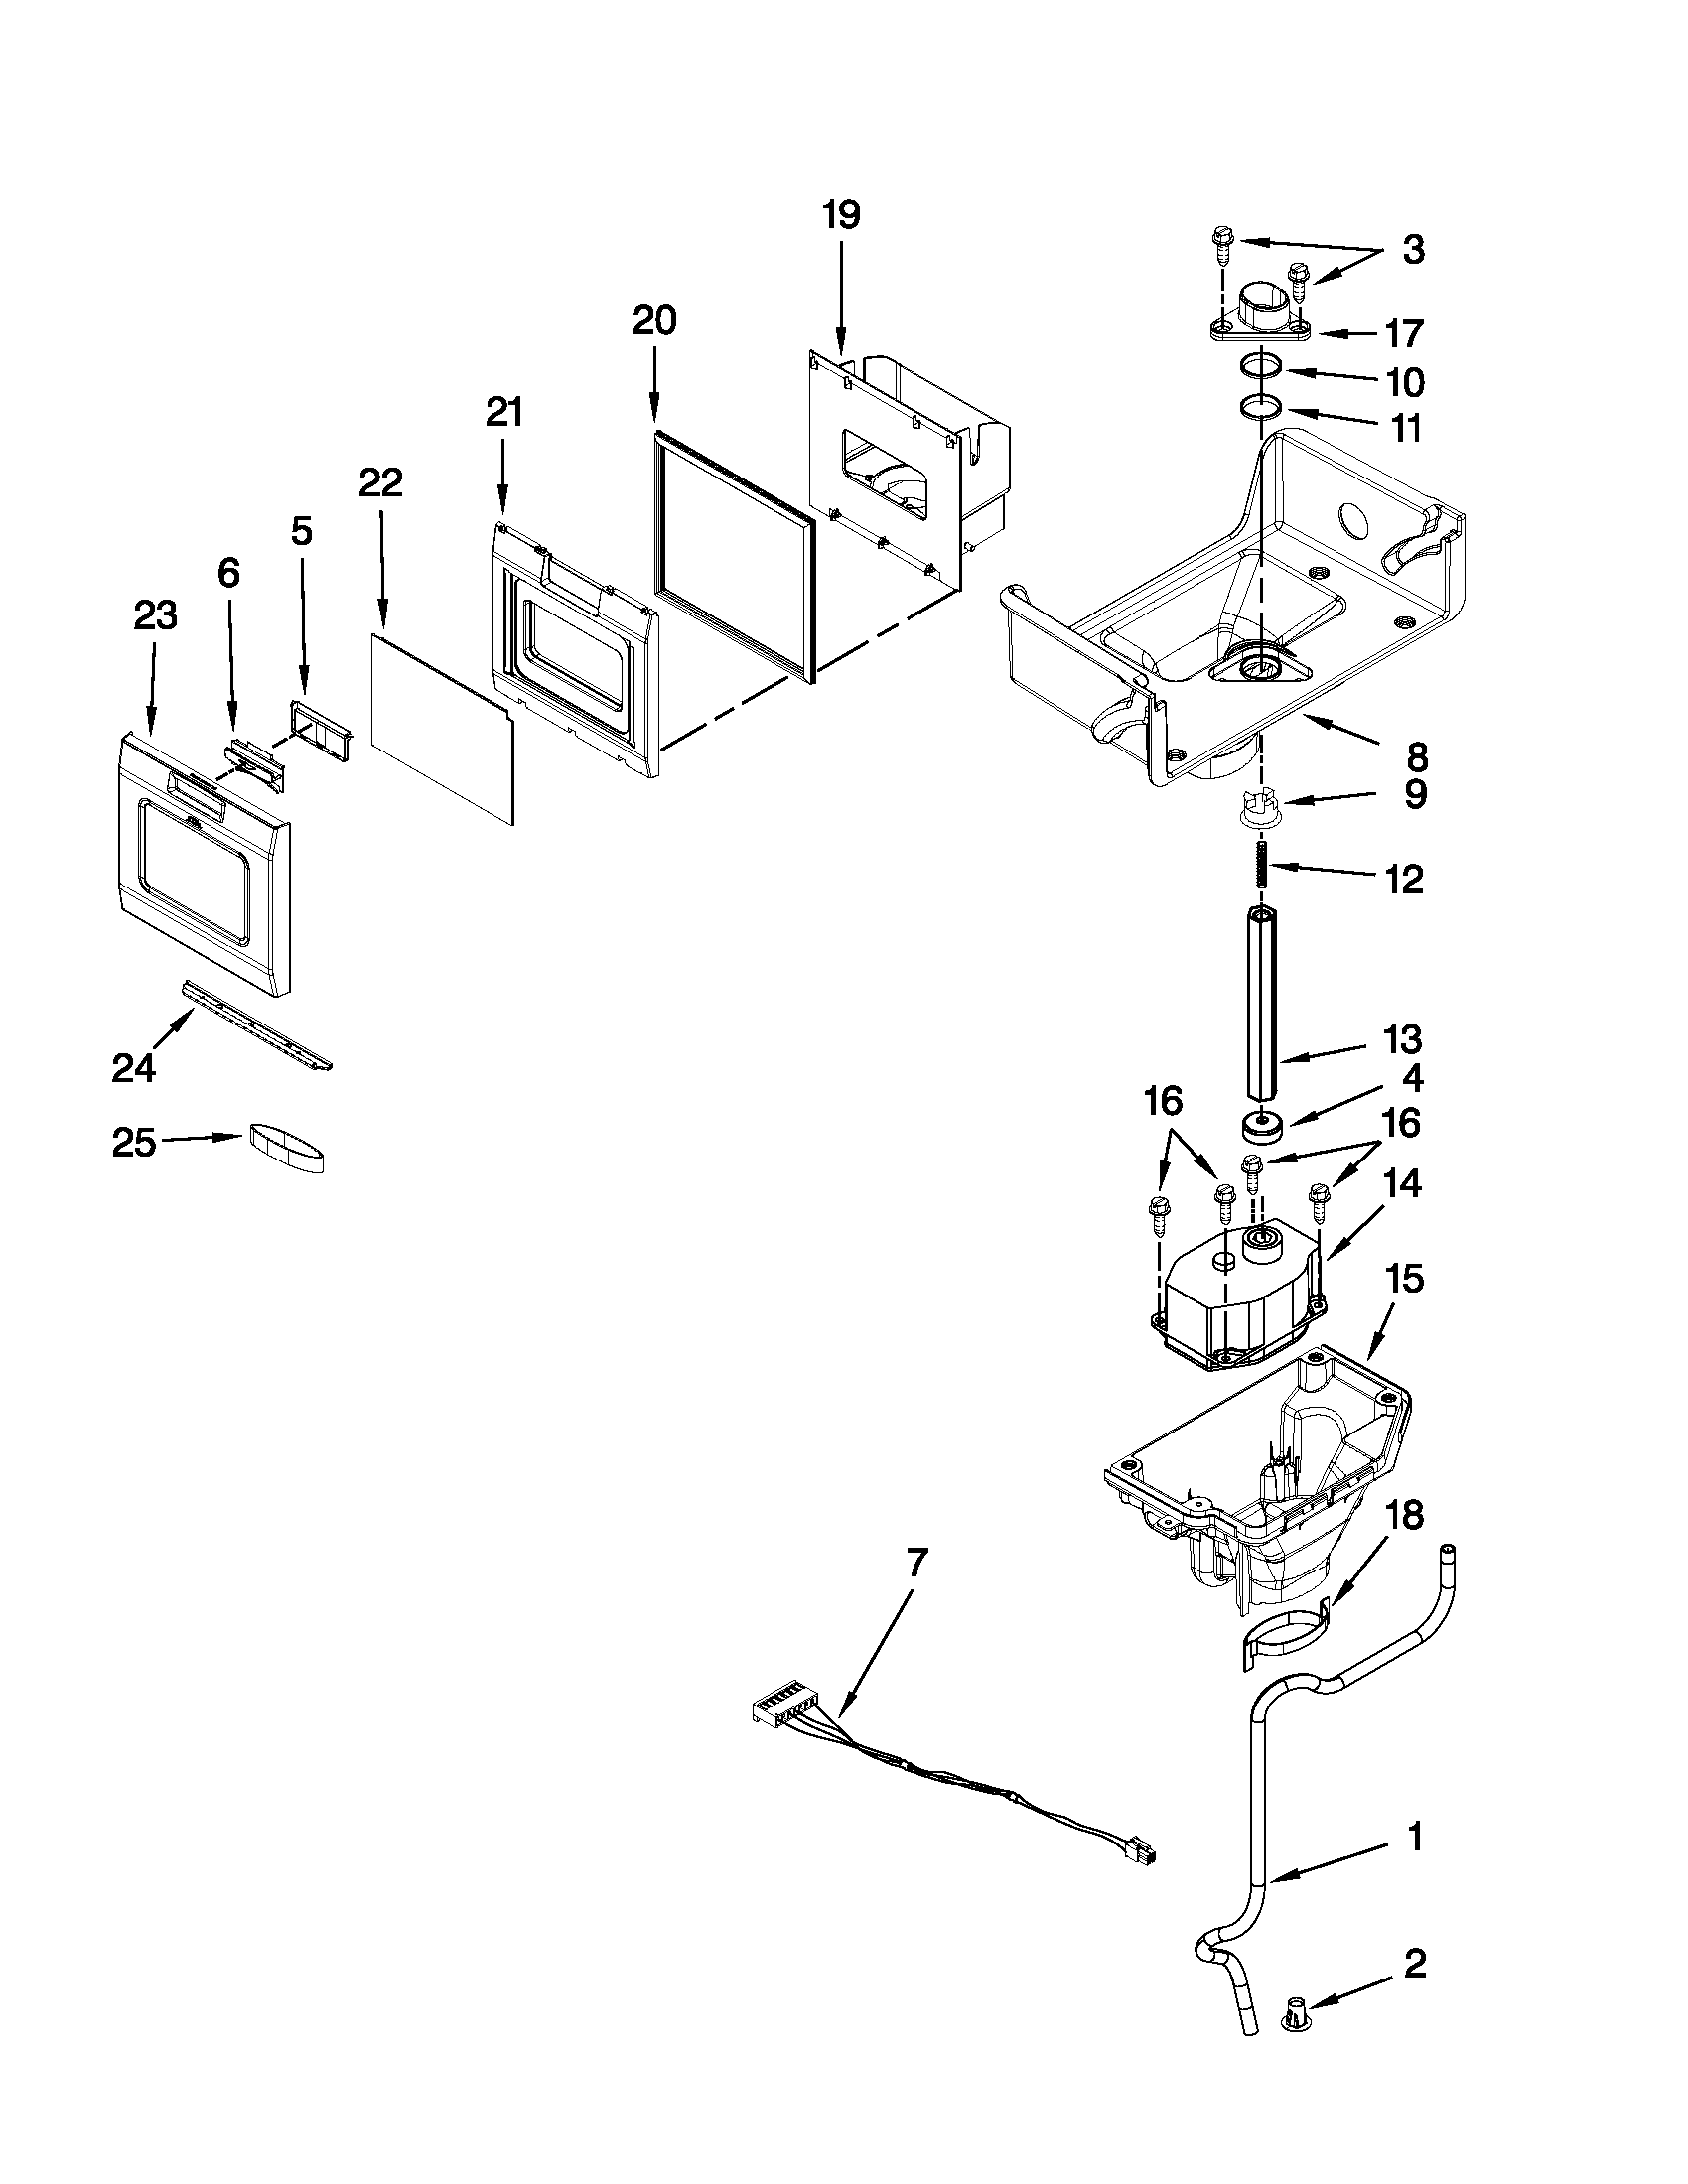 KitchenAid KFIS27CXWH1 motor and ice container parts diagram